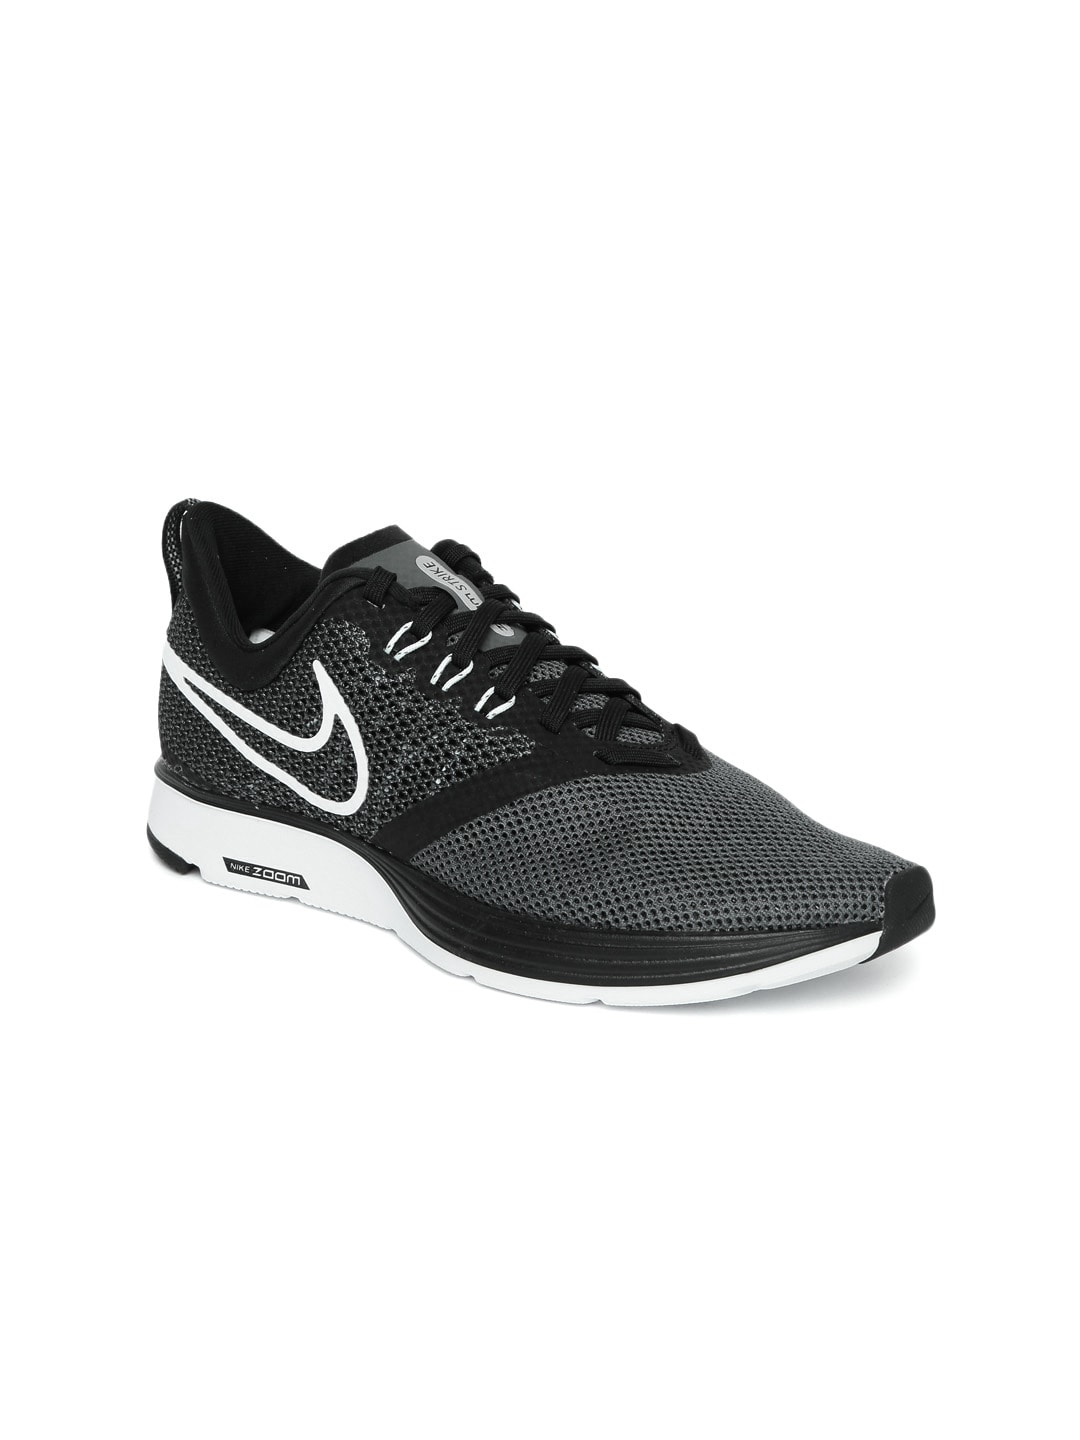 buy popular dabf7 ed461 Nike Running Shoes - Buy Nike Running Shoes Online   Myntra